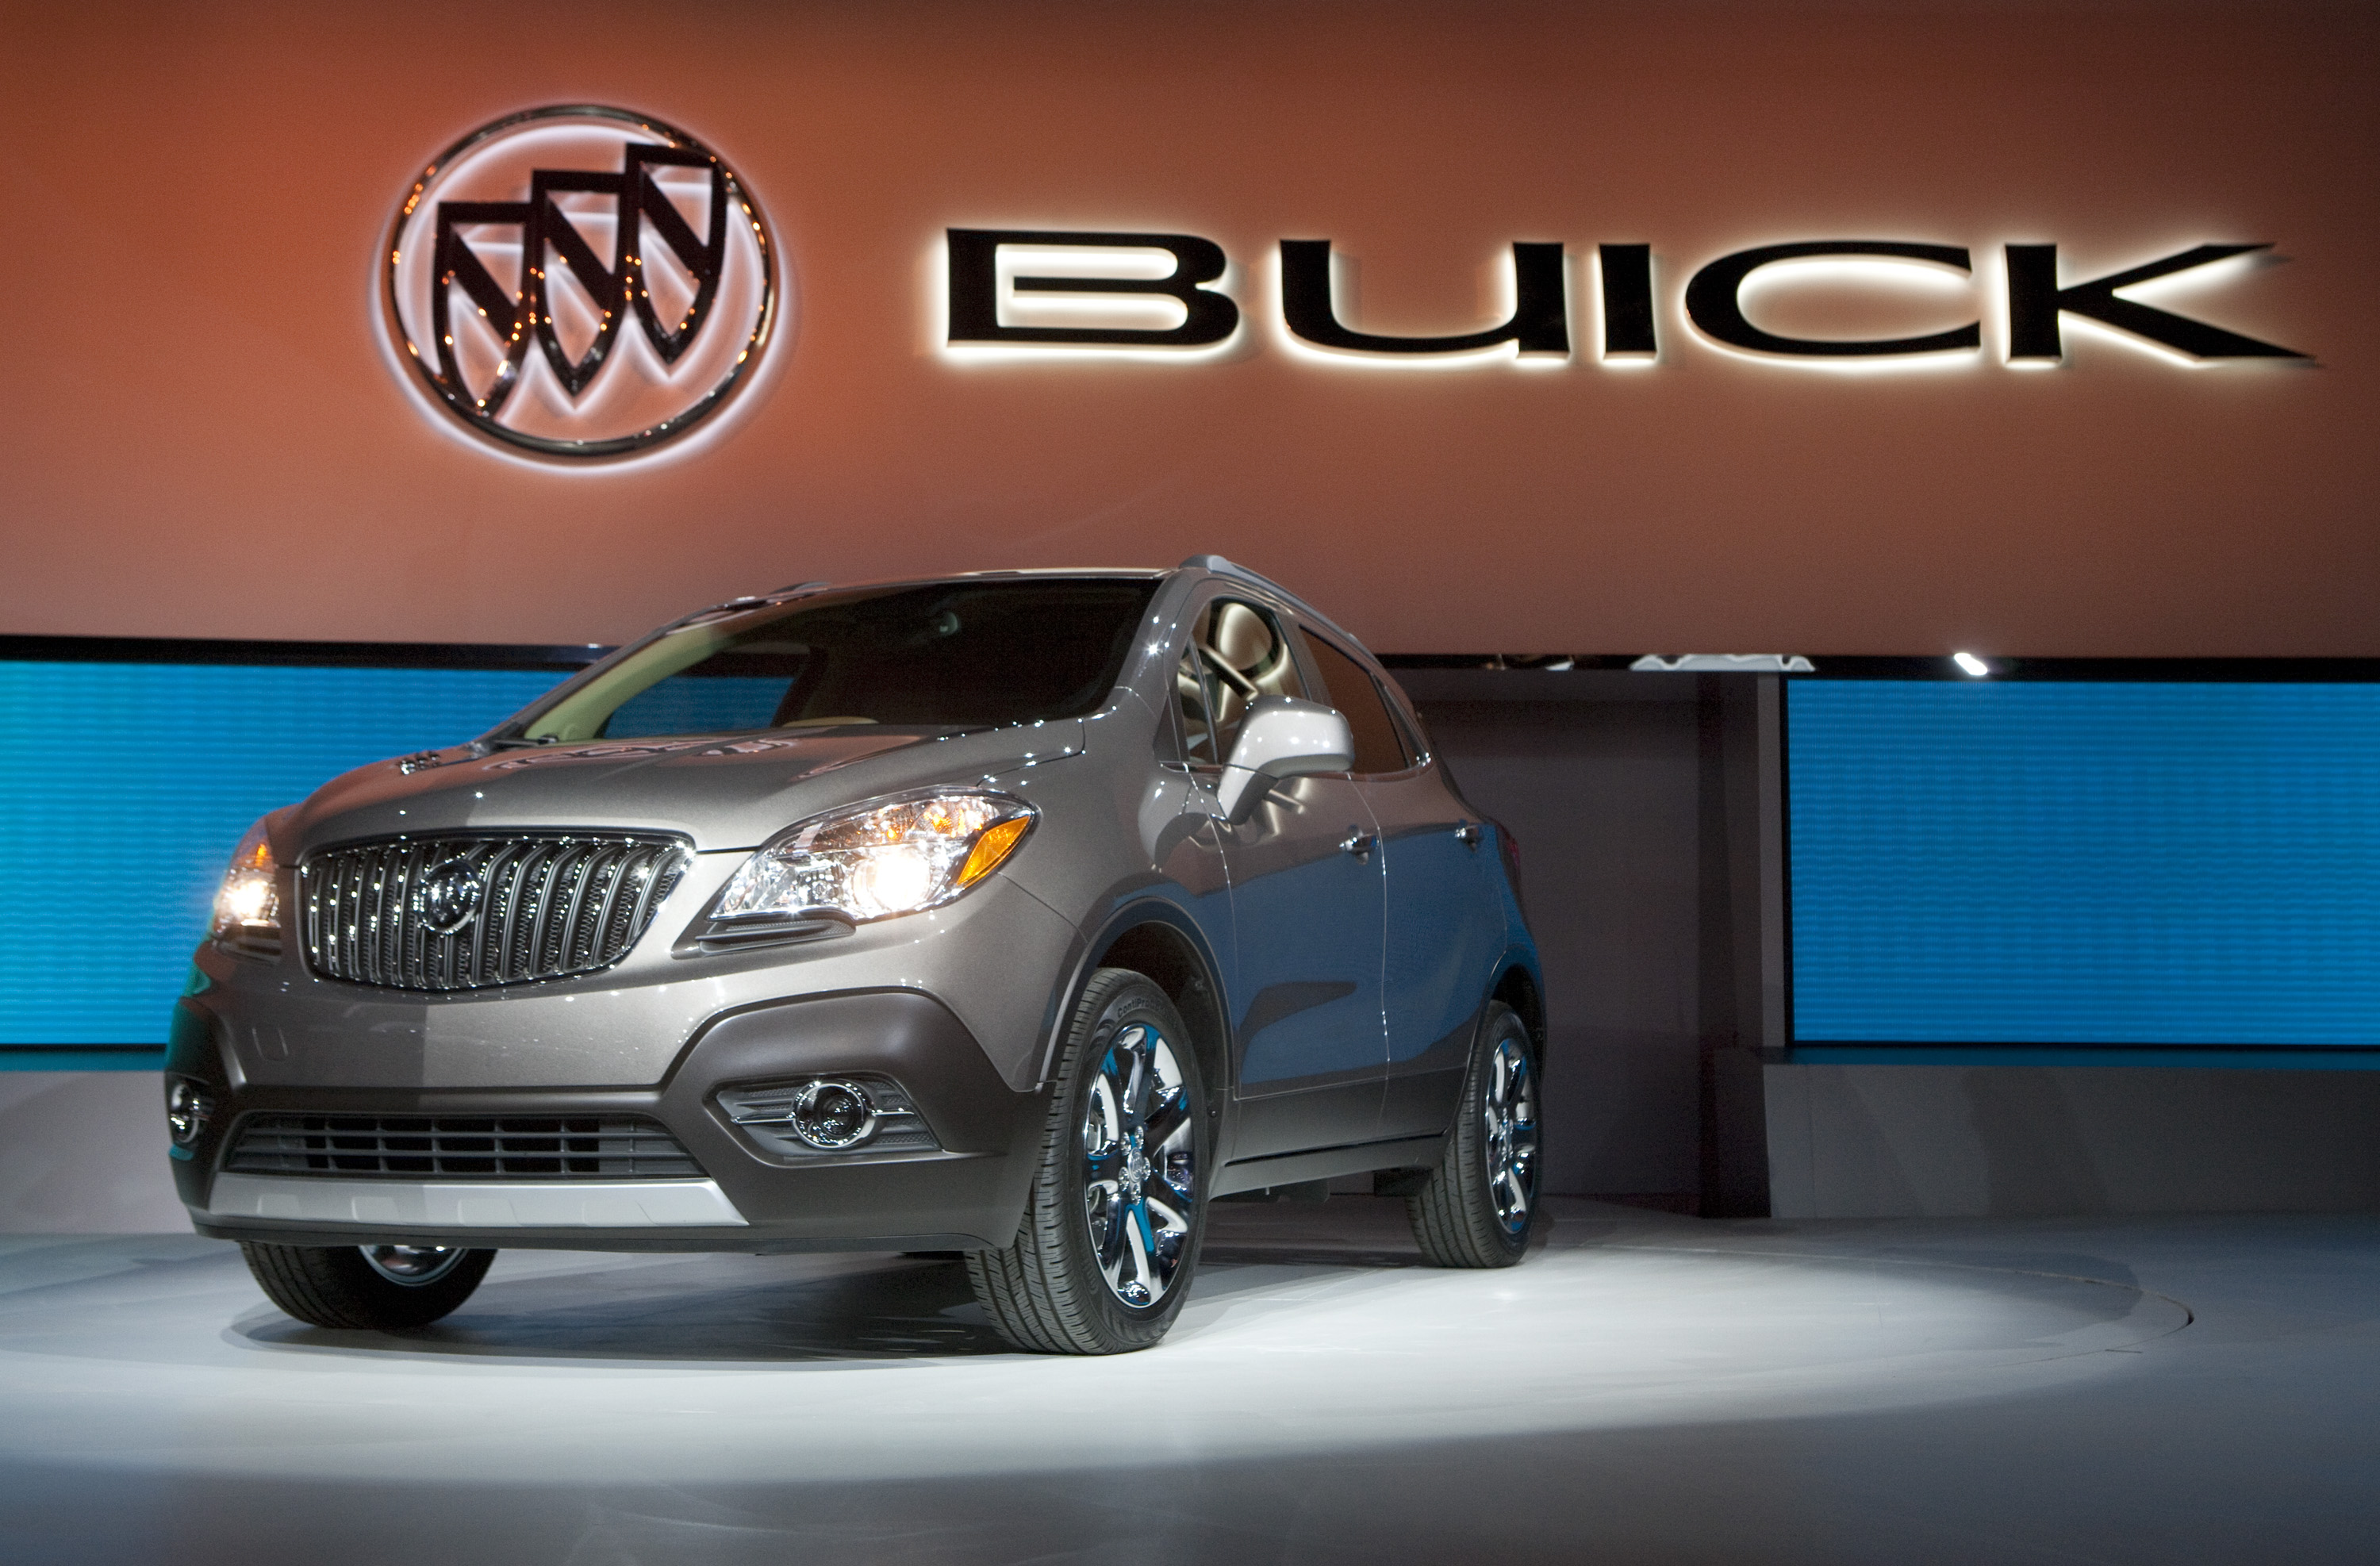 2013 Buick Encore Revealed at 2012 NAIAS